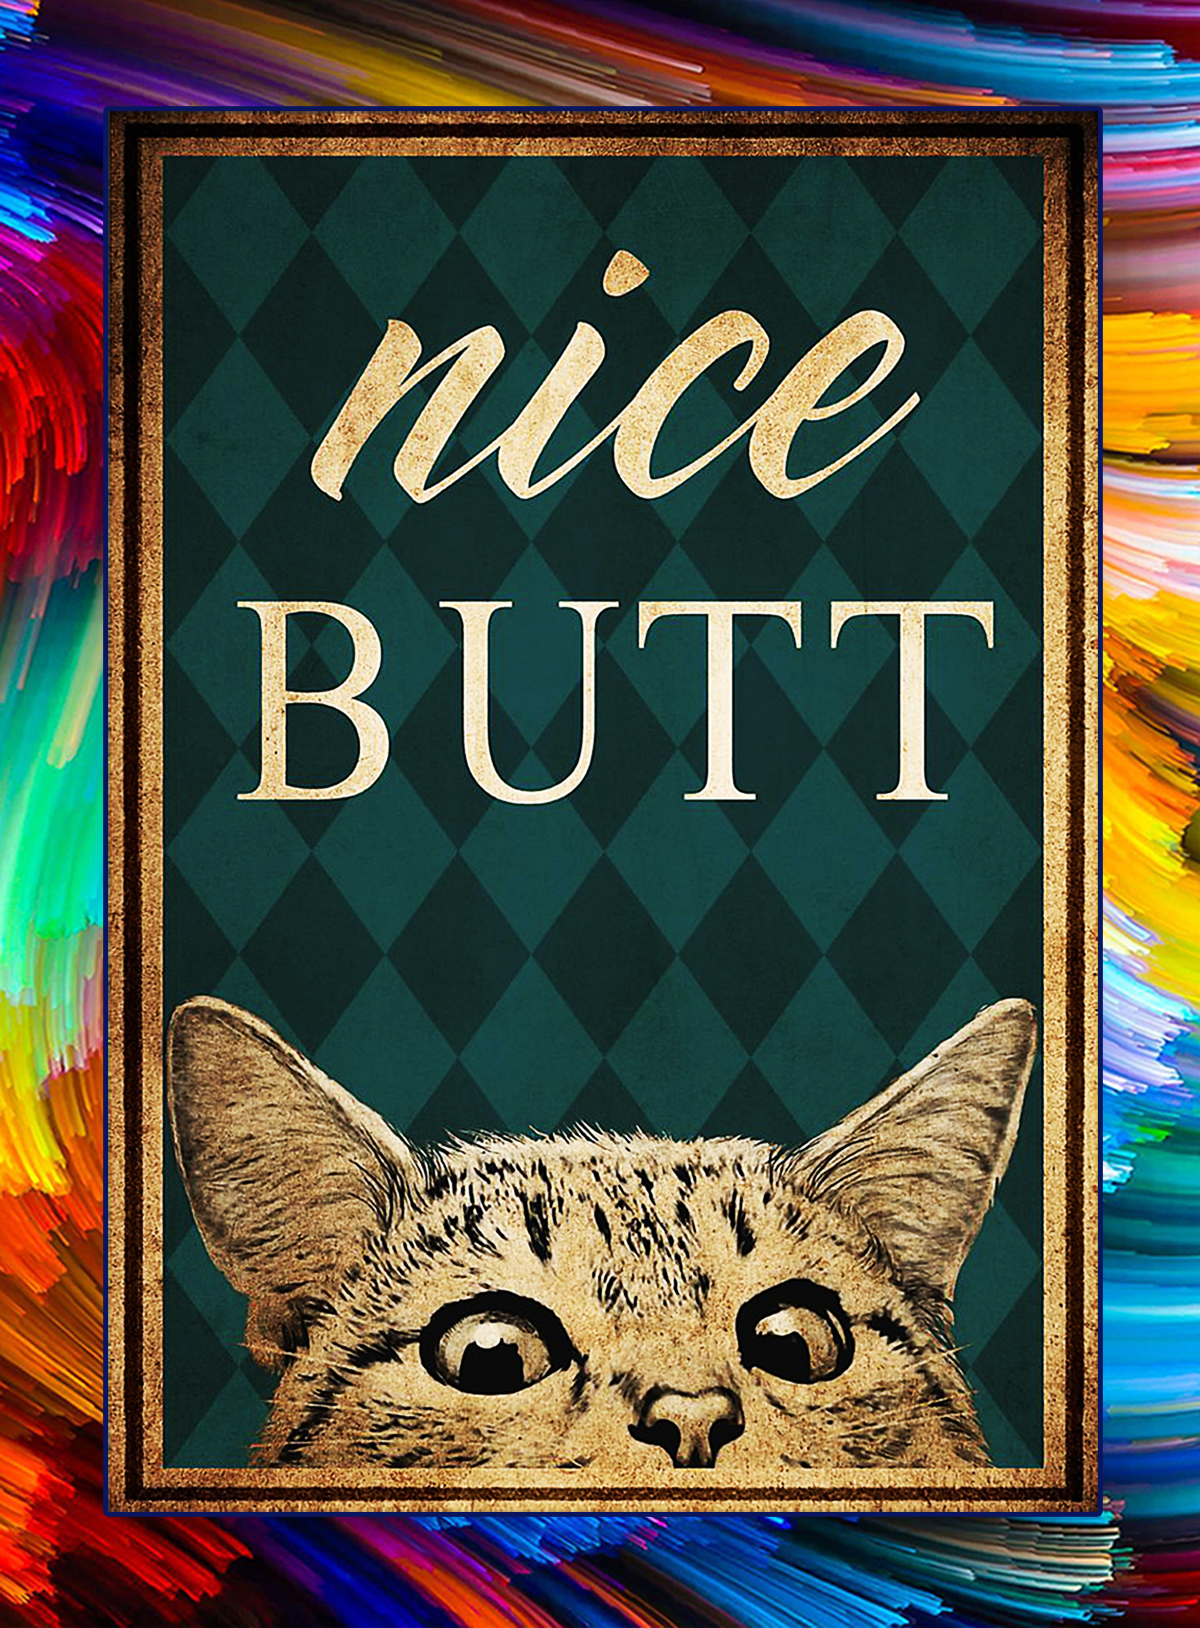 Vintage nice butt cat poster - A1